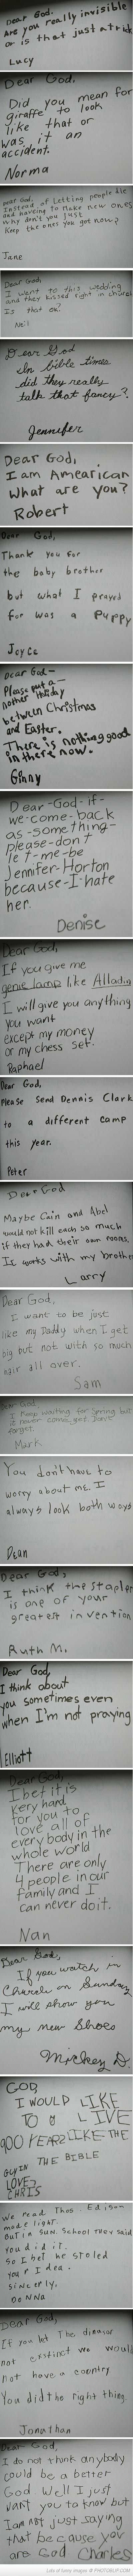 'Dear God' letters from some little tikes. I especially like the one thanking God for the brother but she asked for a puppy. I may have felt that way at one point...Hahah